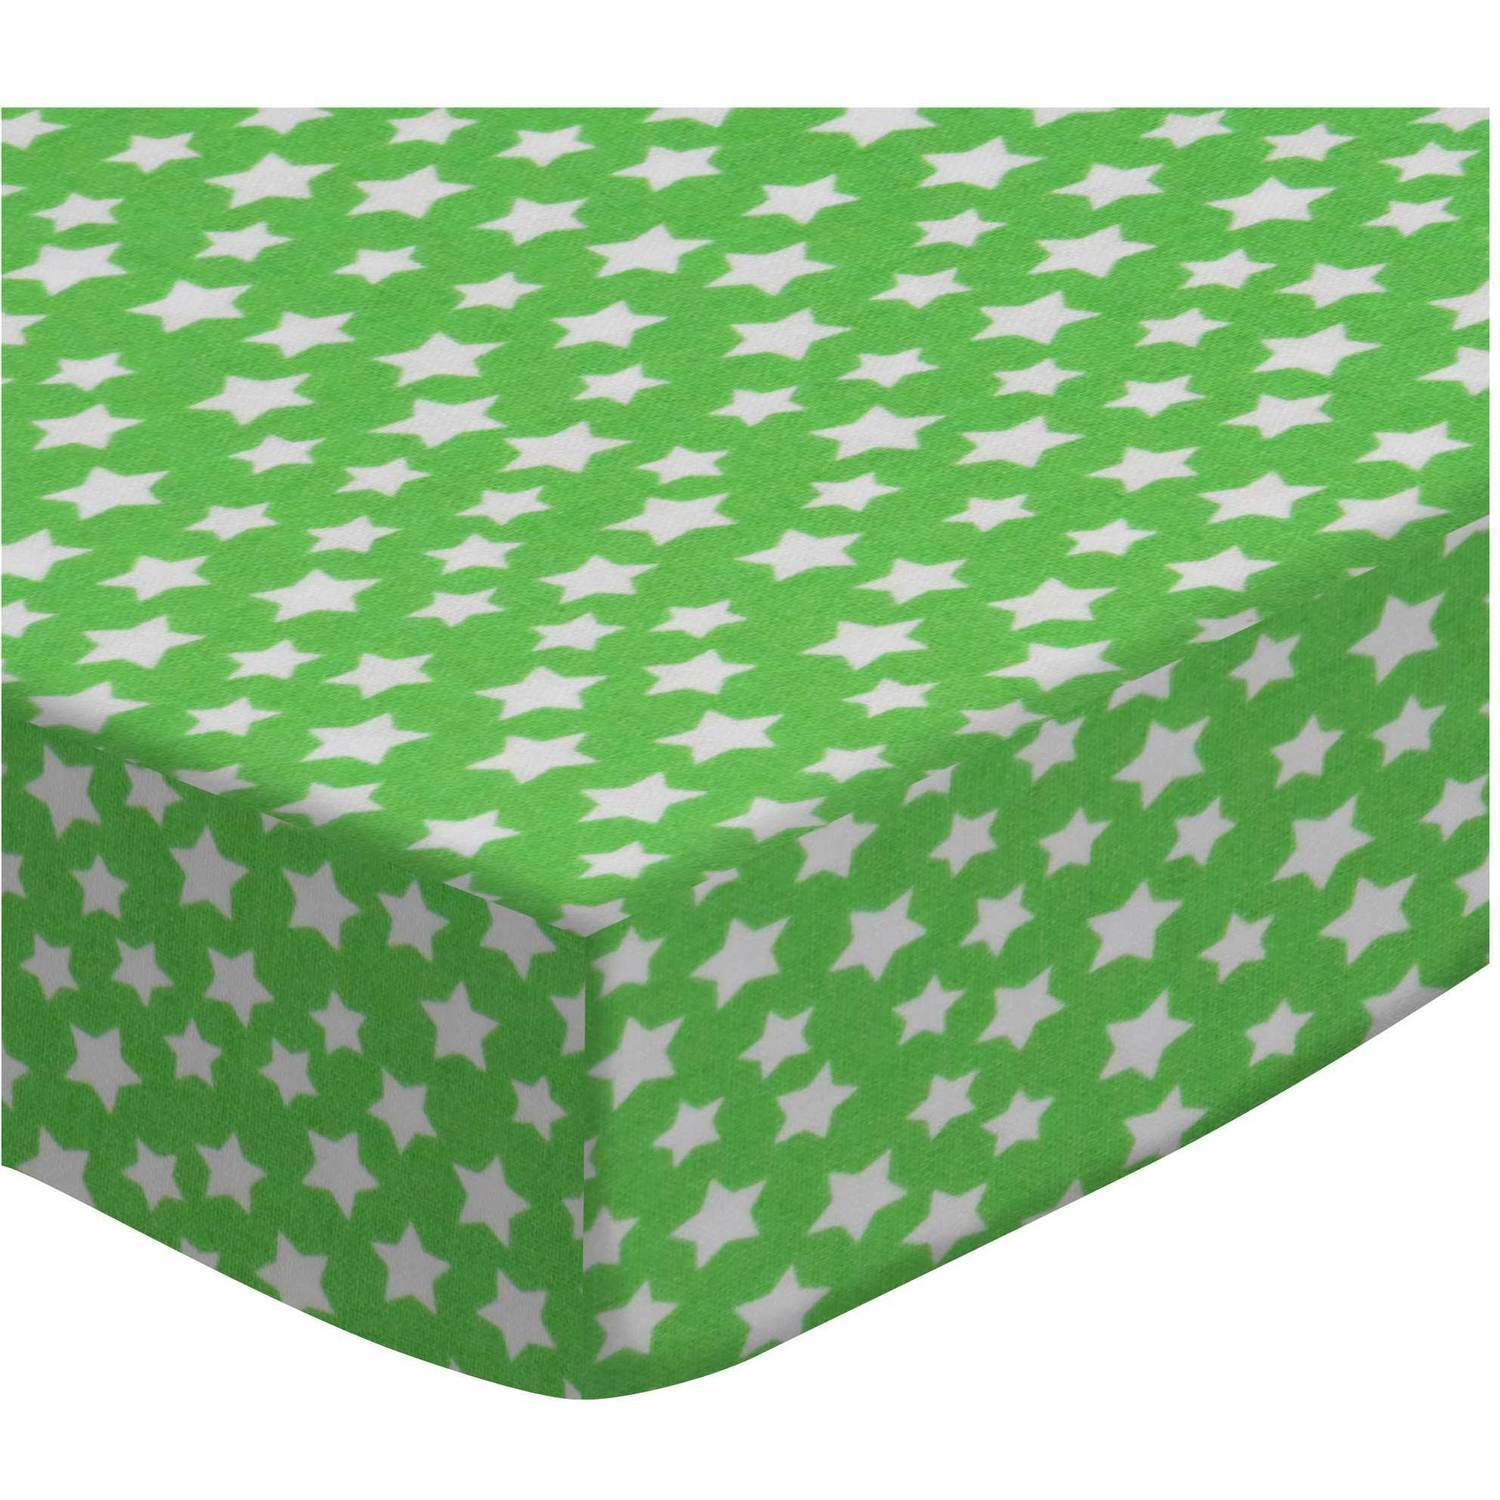 SheetWorld Fitted Crib / Toddler Sheet - Primary Stars White On Green Woven